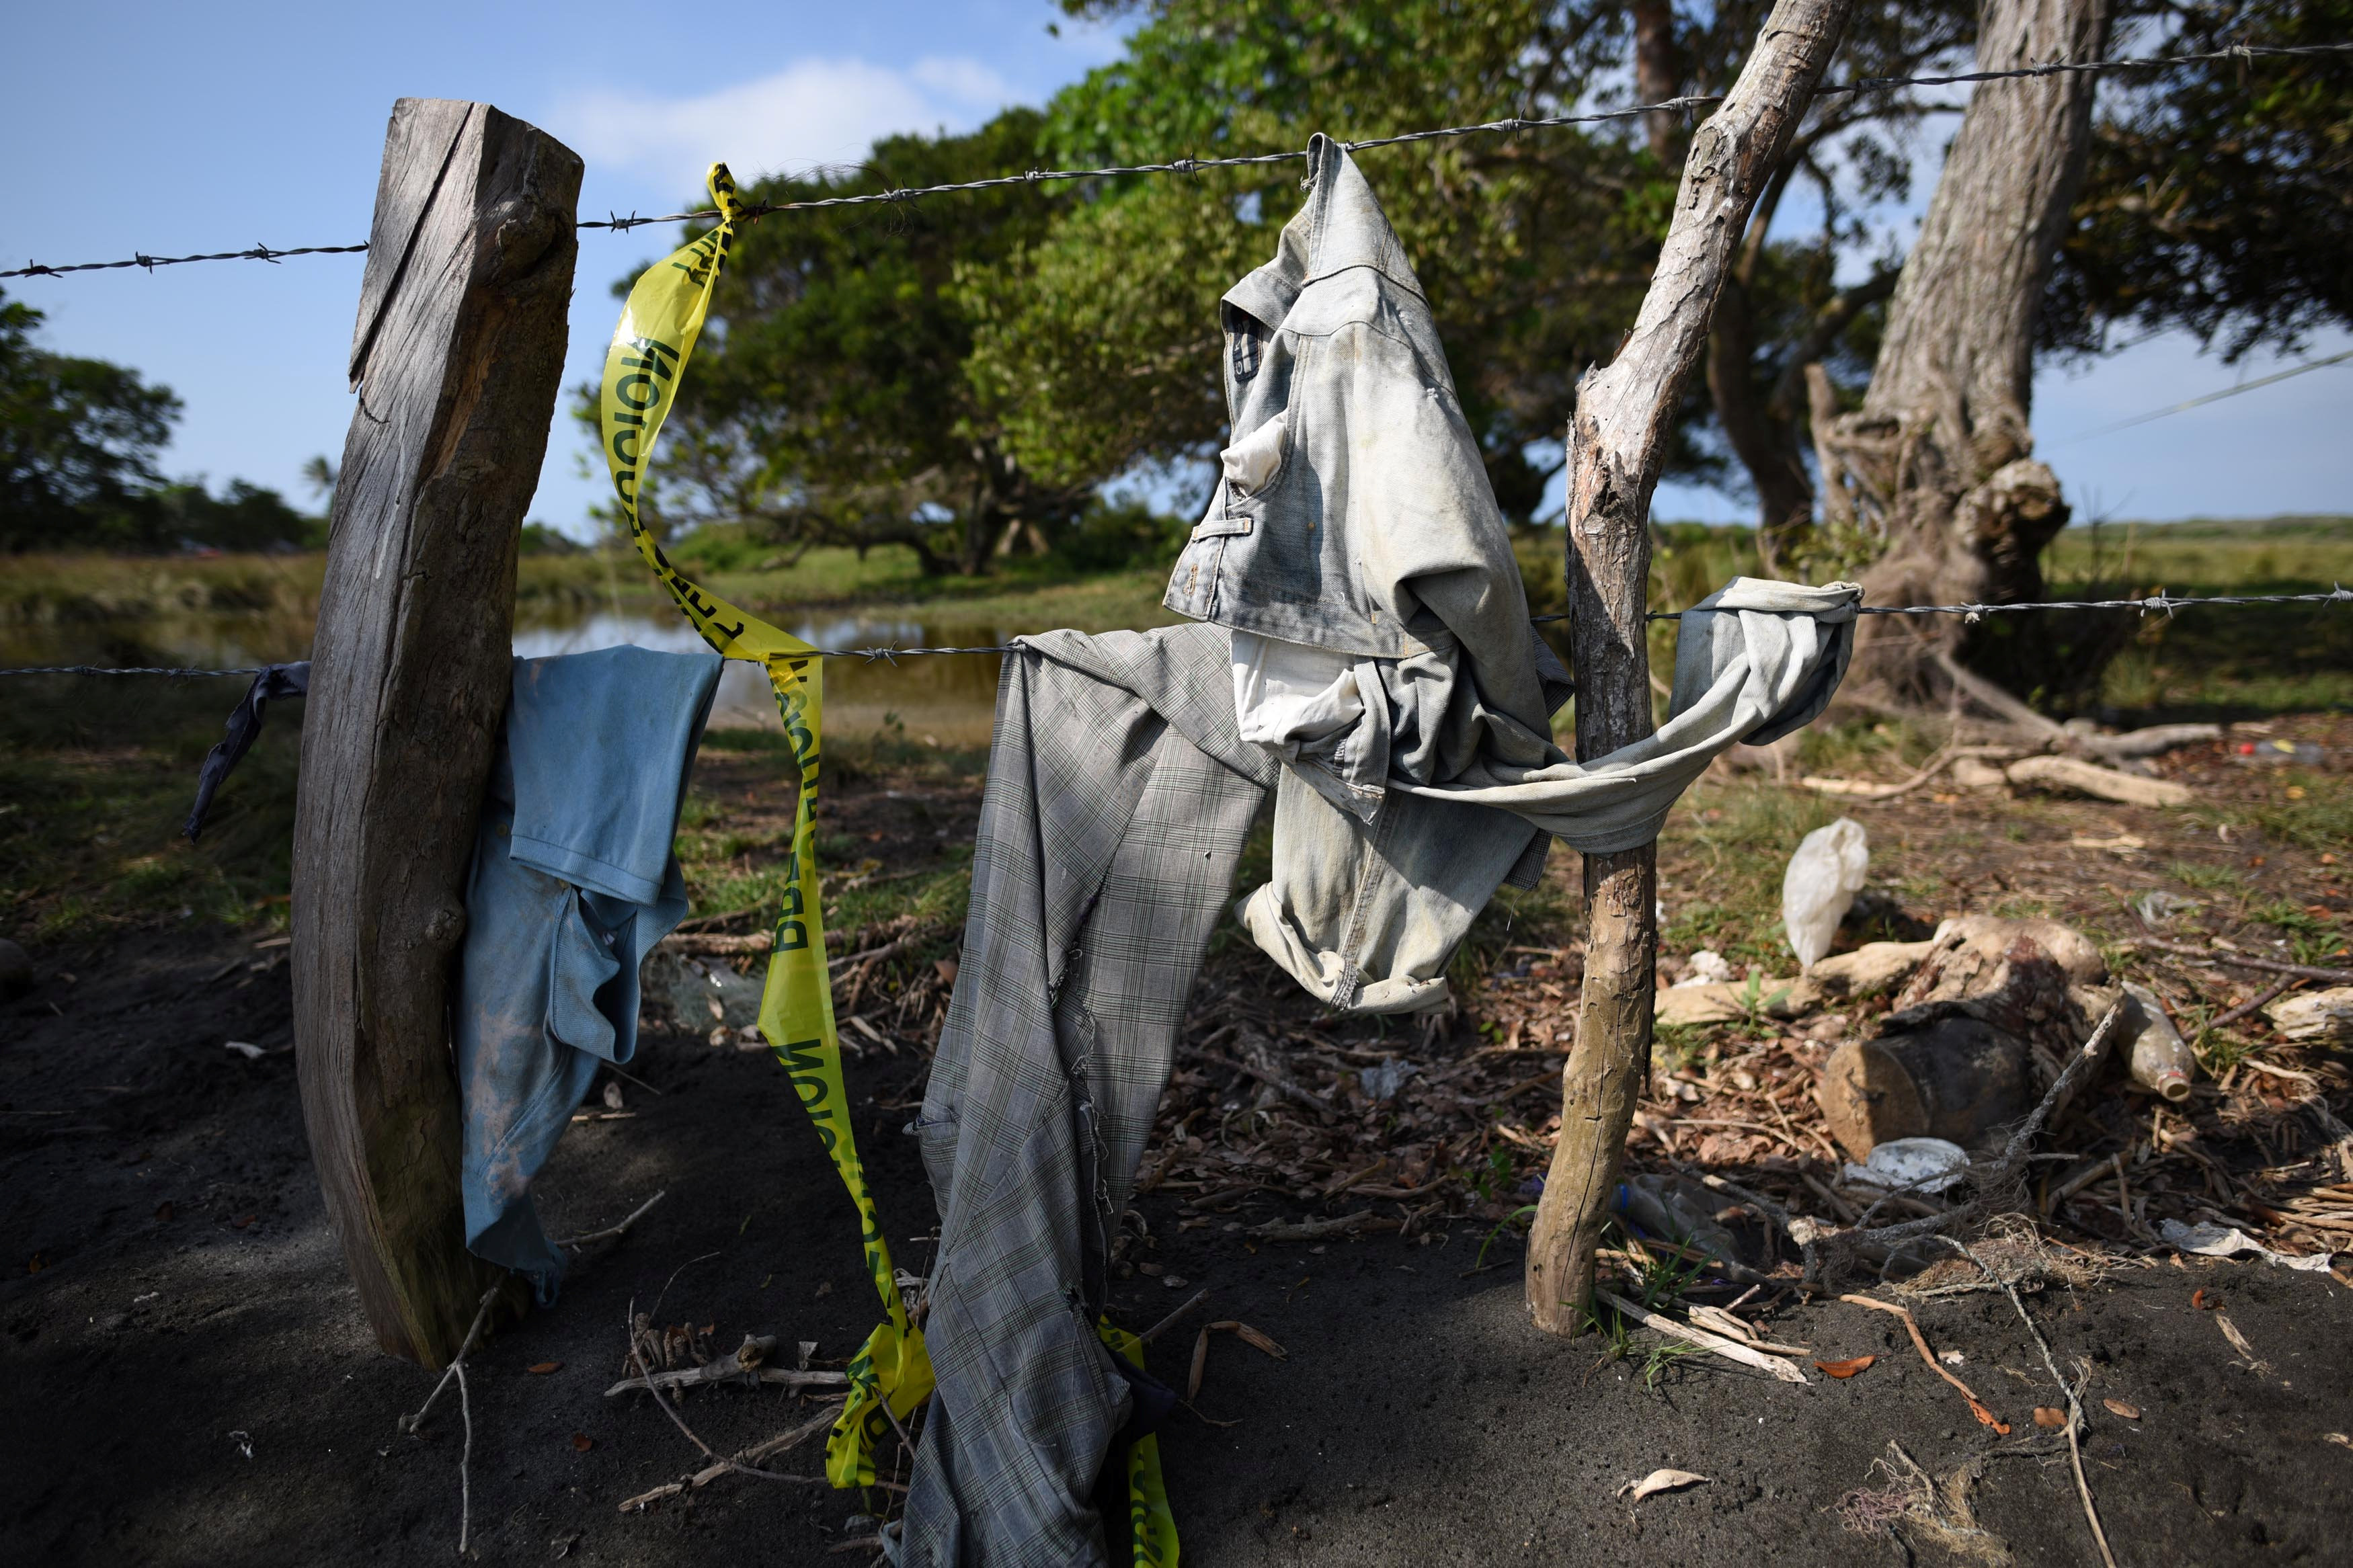 Clothing is pictured on a wire fence at site of unmarked graves where a forensic team and judicial authorities are working in after human skulls were found, in Alvarado, in Veracruz state, Mexico on March 19, 2017. (REUTERS/Yahir Ceballos)